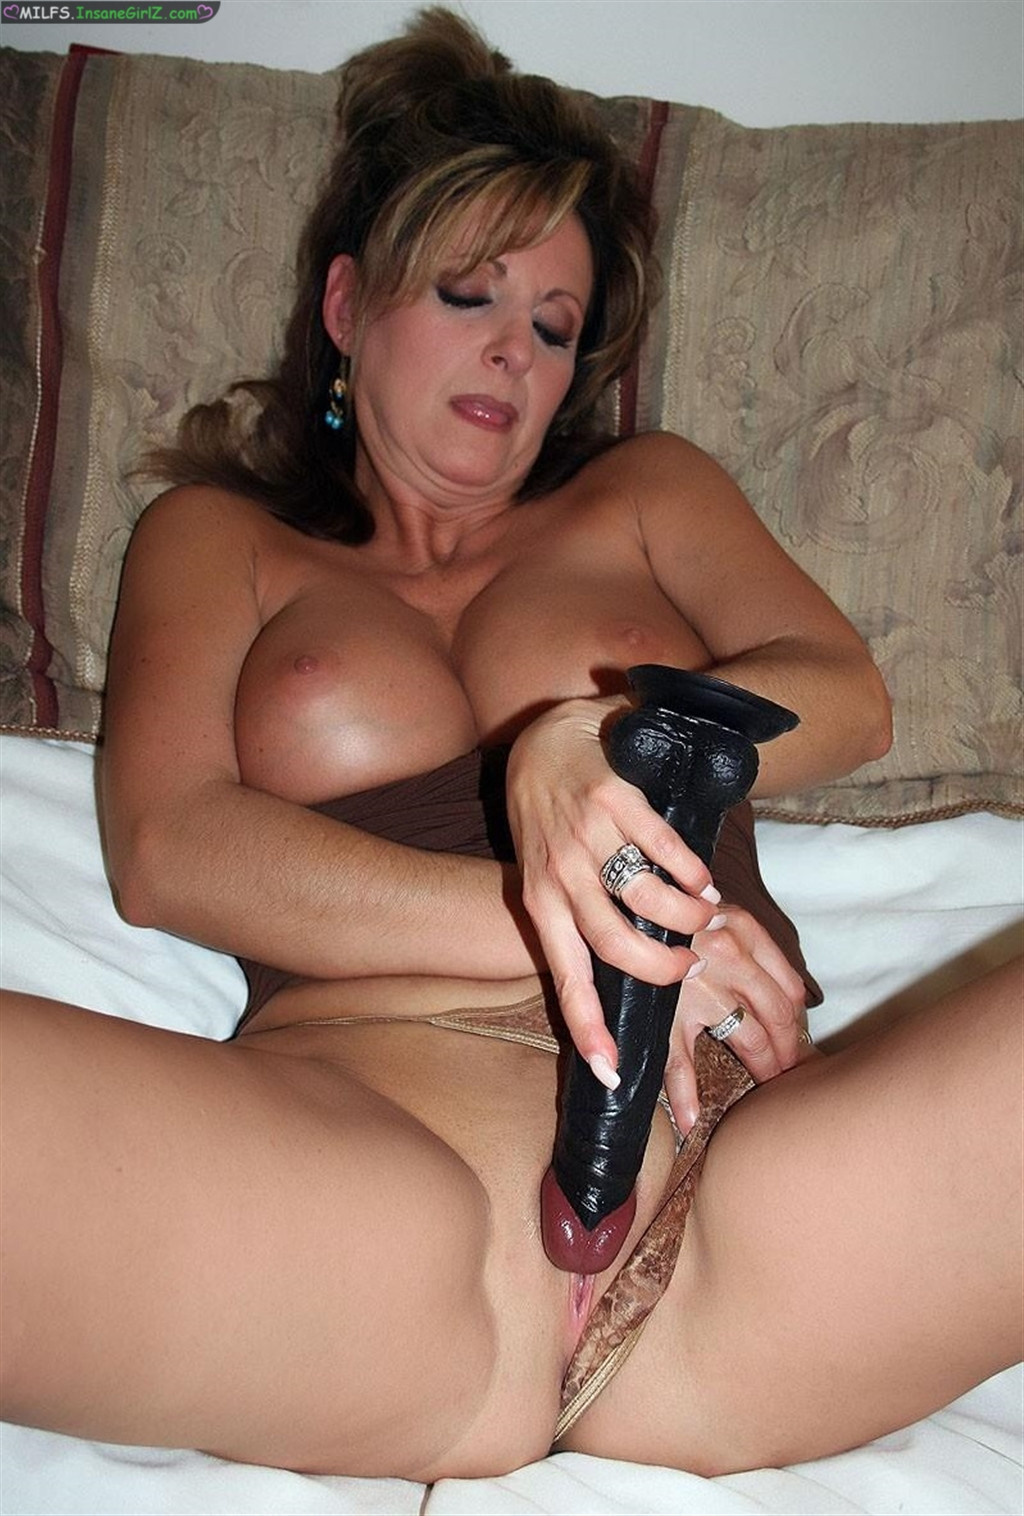 milf personals in the hague